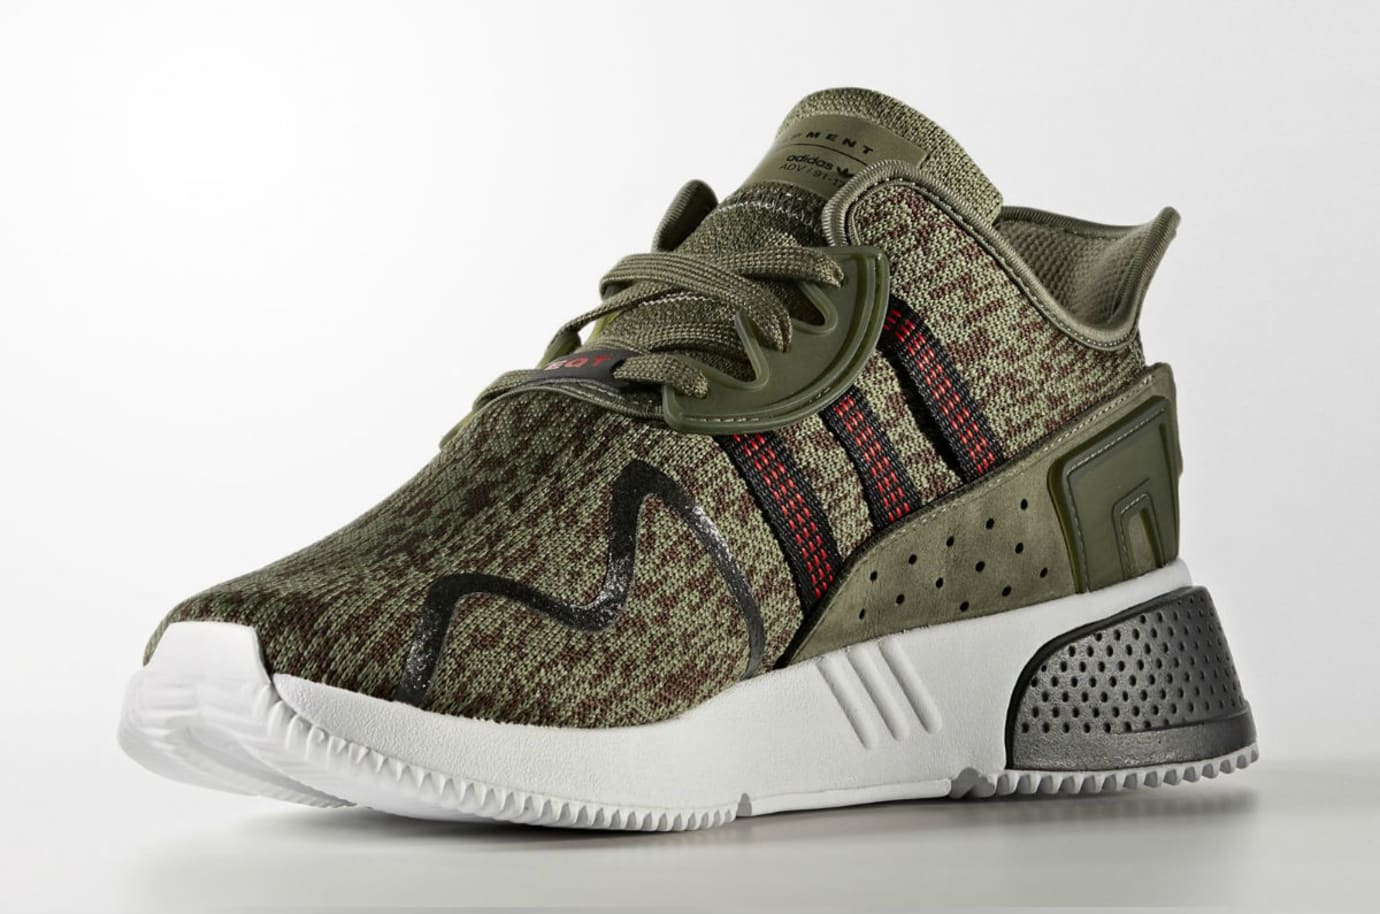 Adidas EQT Cushion ADV Olive Camo Release Date AC7722 Medial